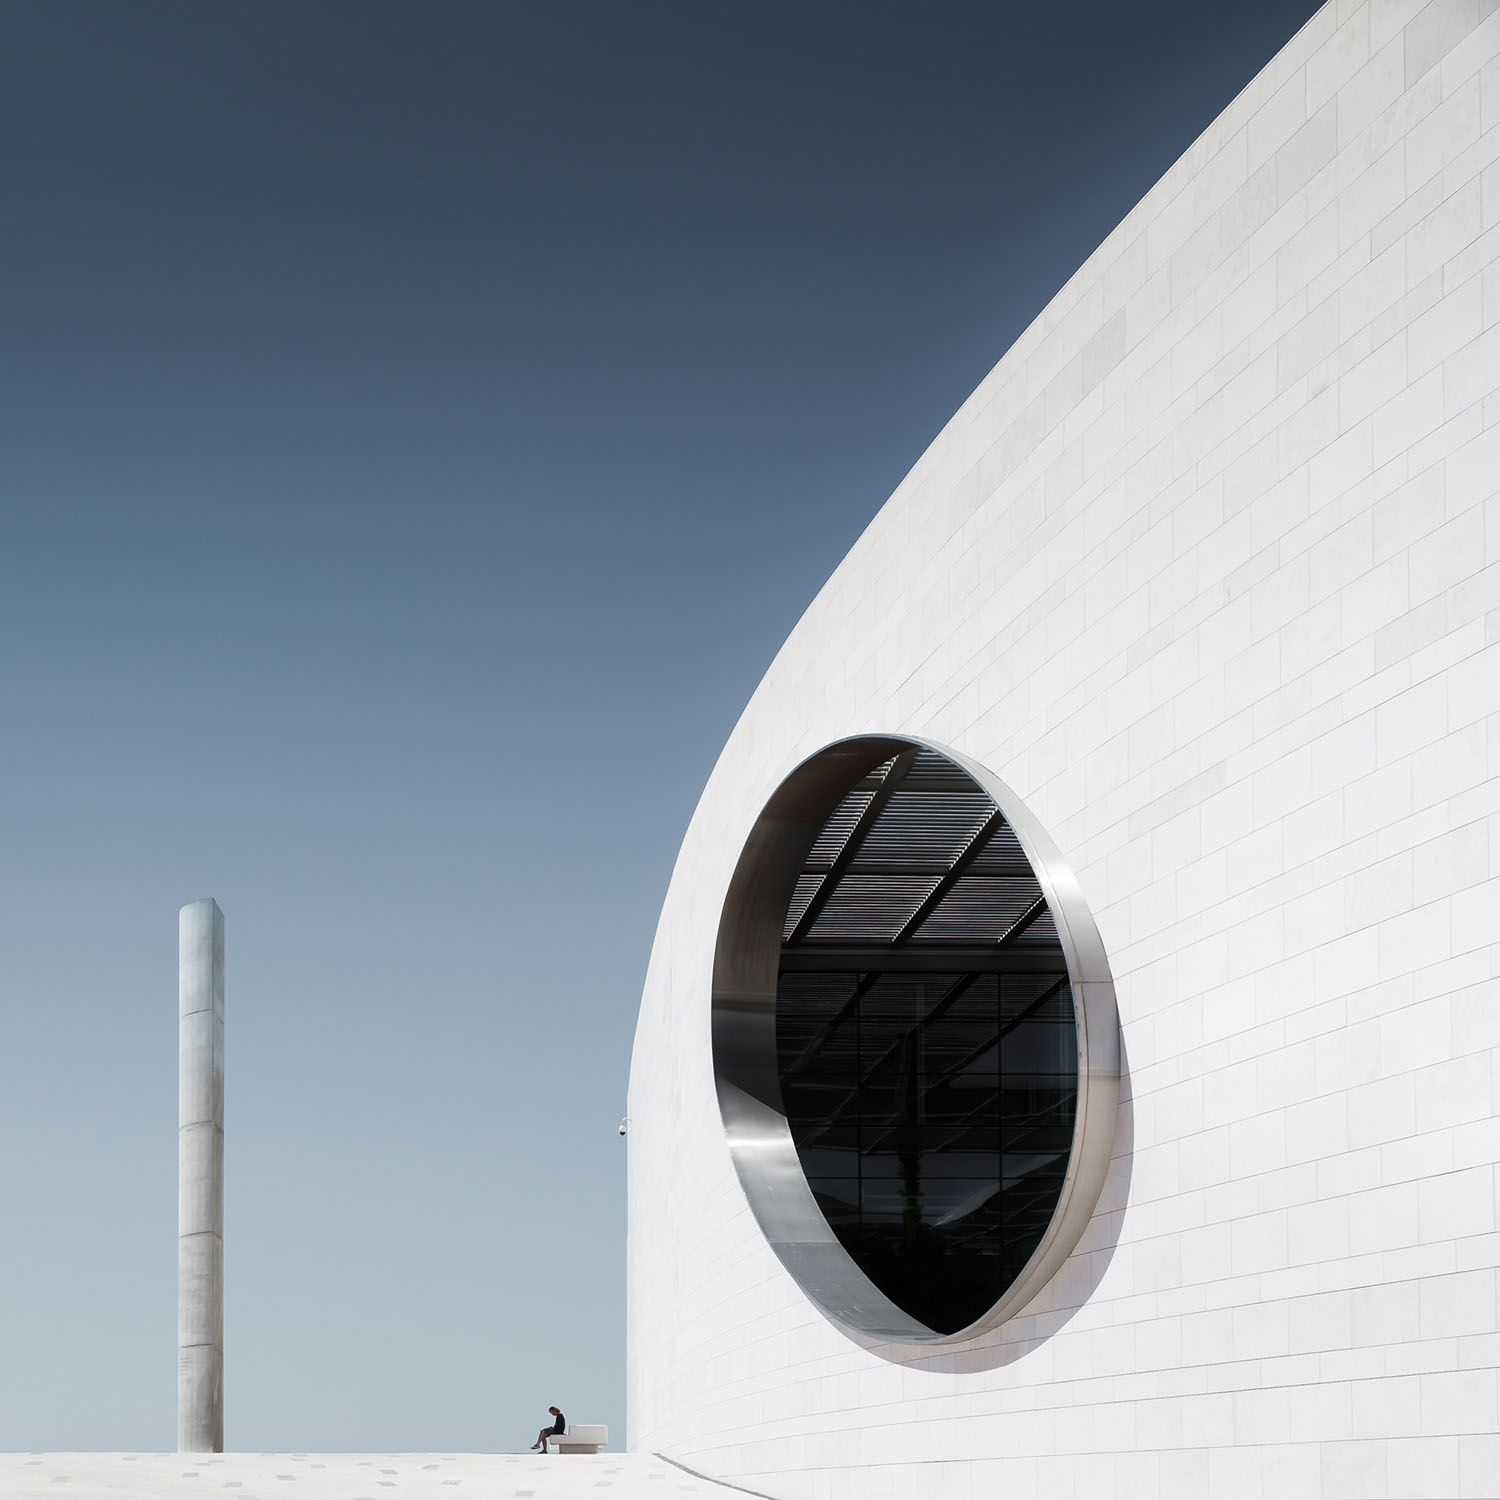 Architektur - Champalimaud Centre for the Unknown, Lissabon © Maik Lipp